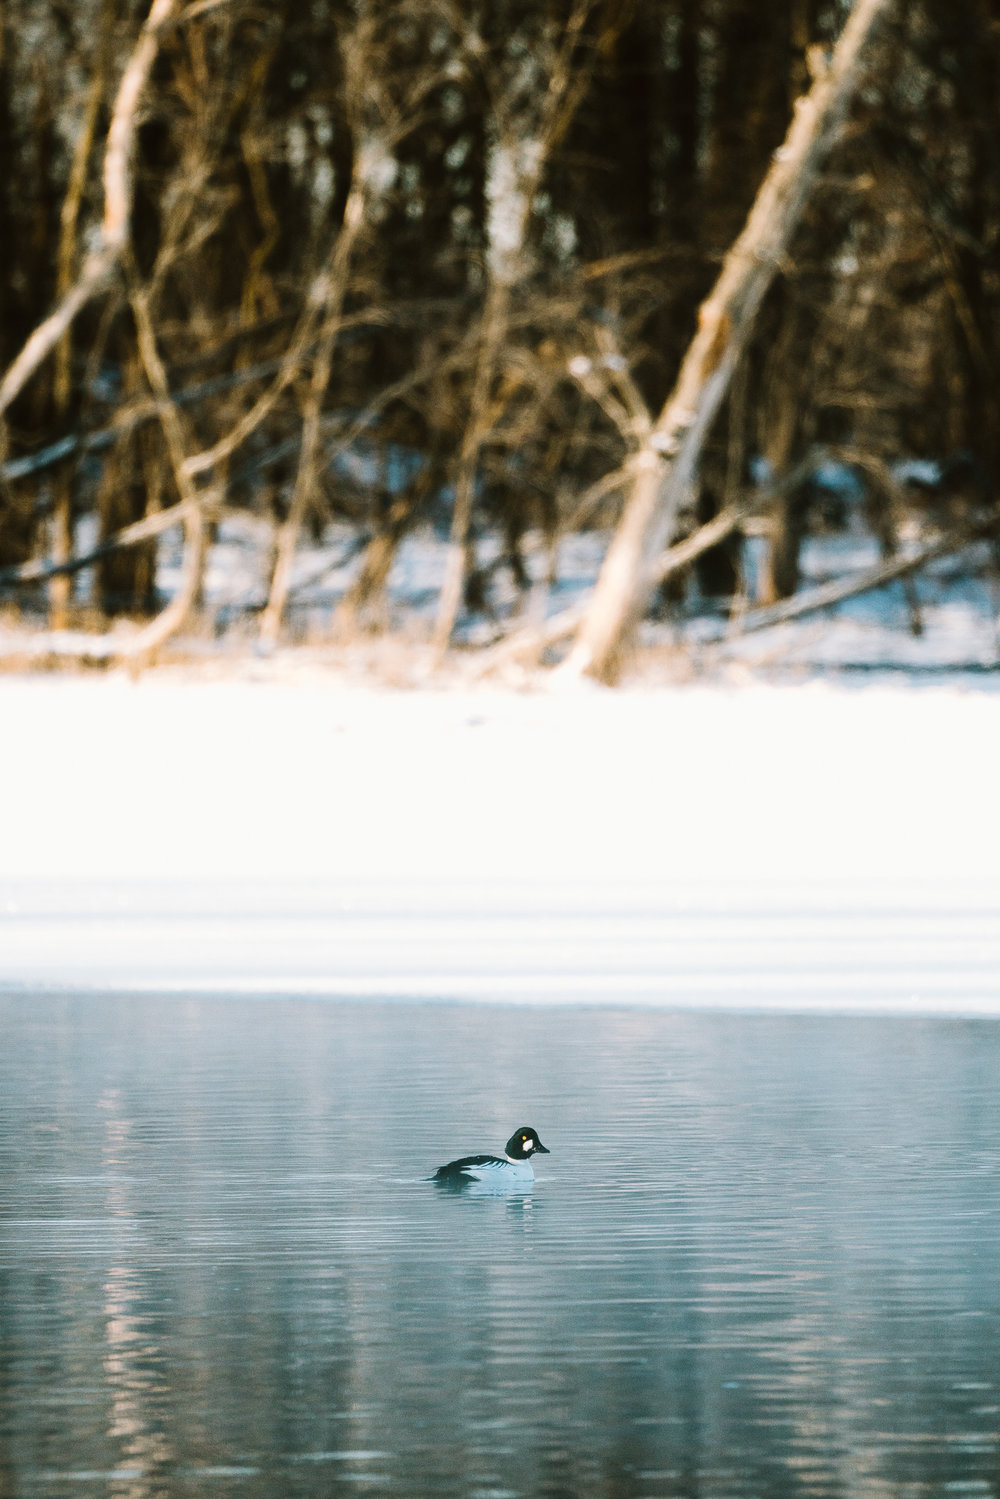 GoldenEye Duck at Colvill Park in Red Wing, Minnesota